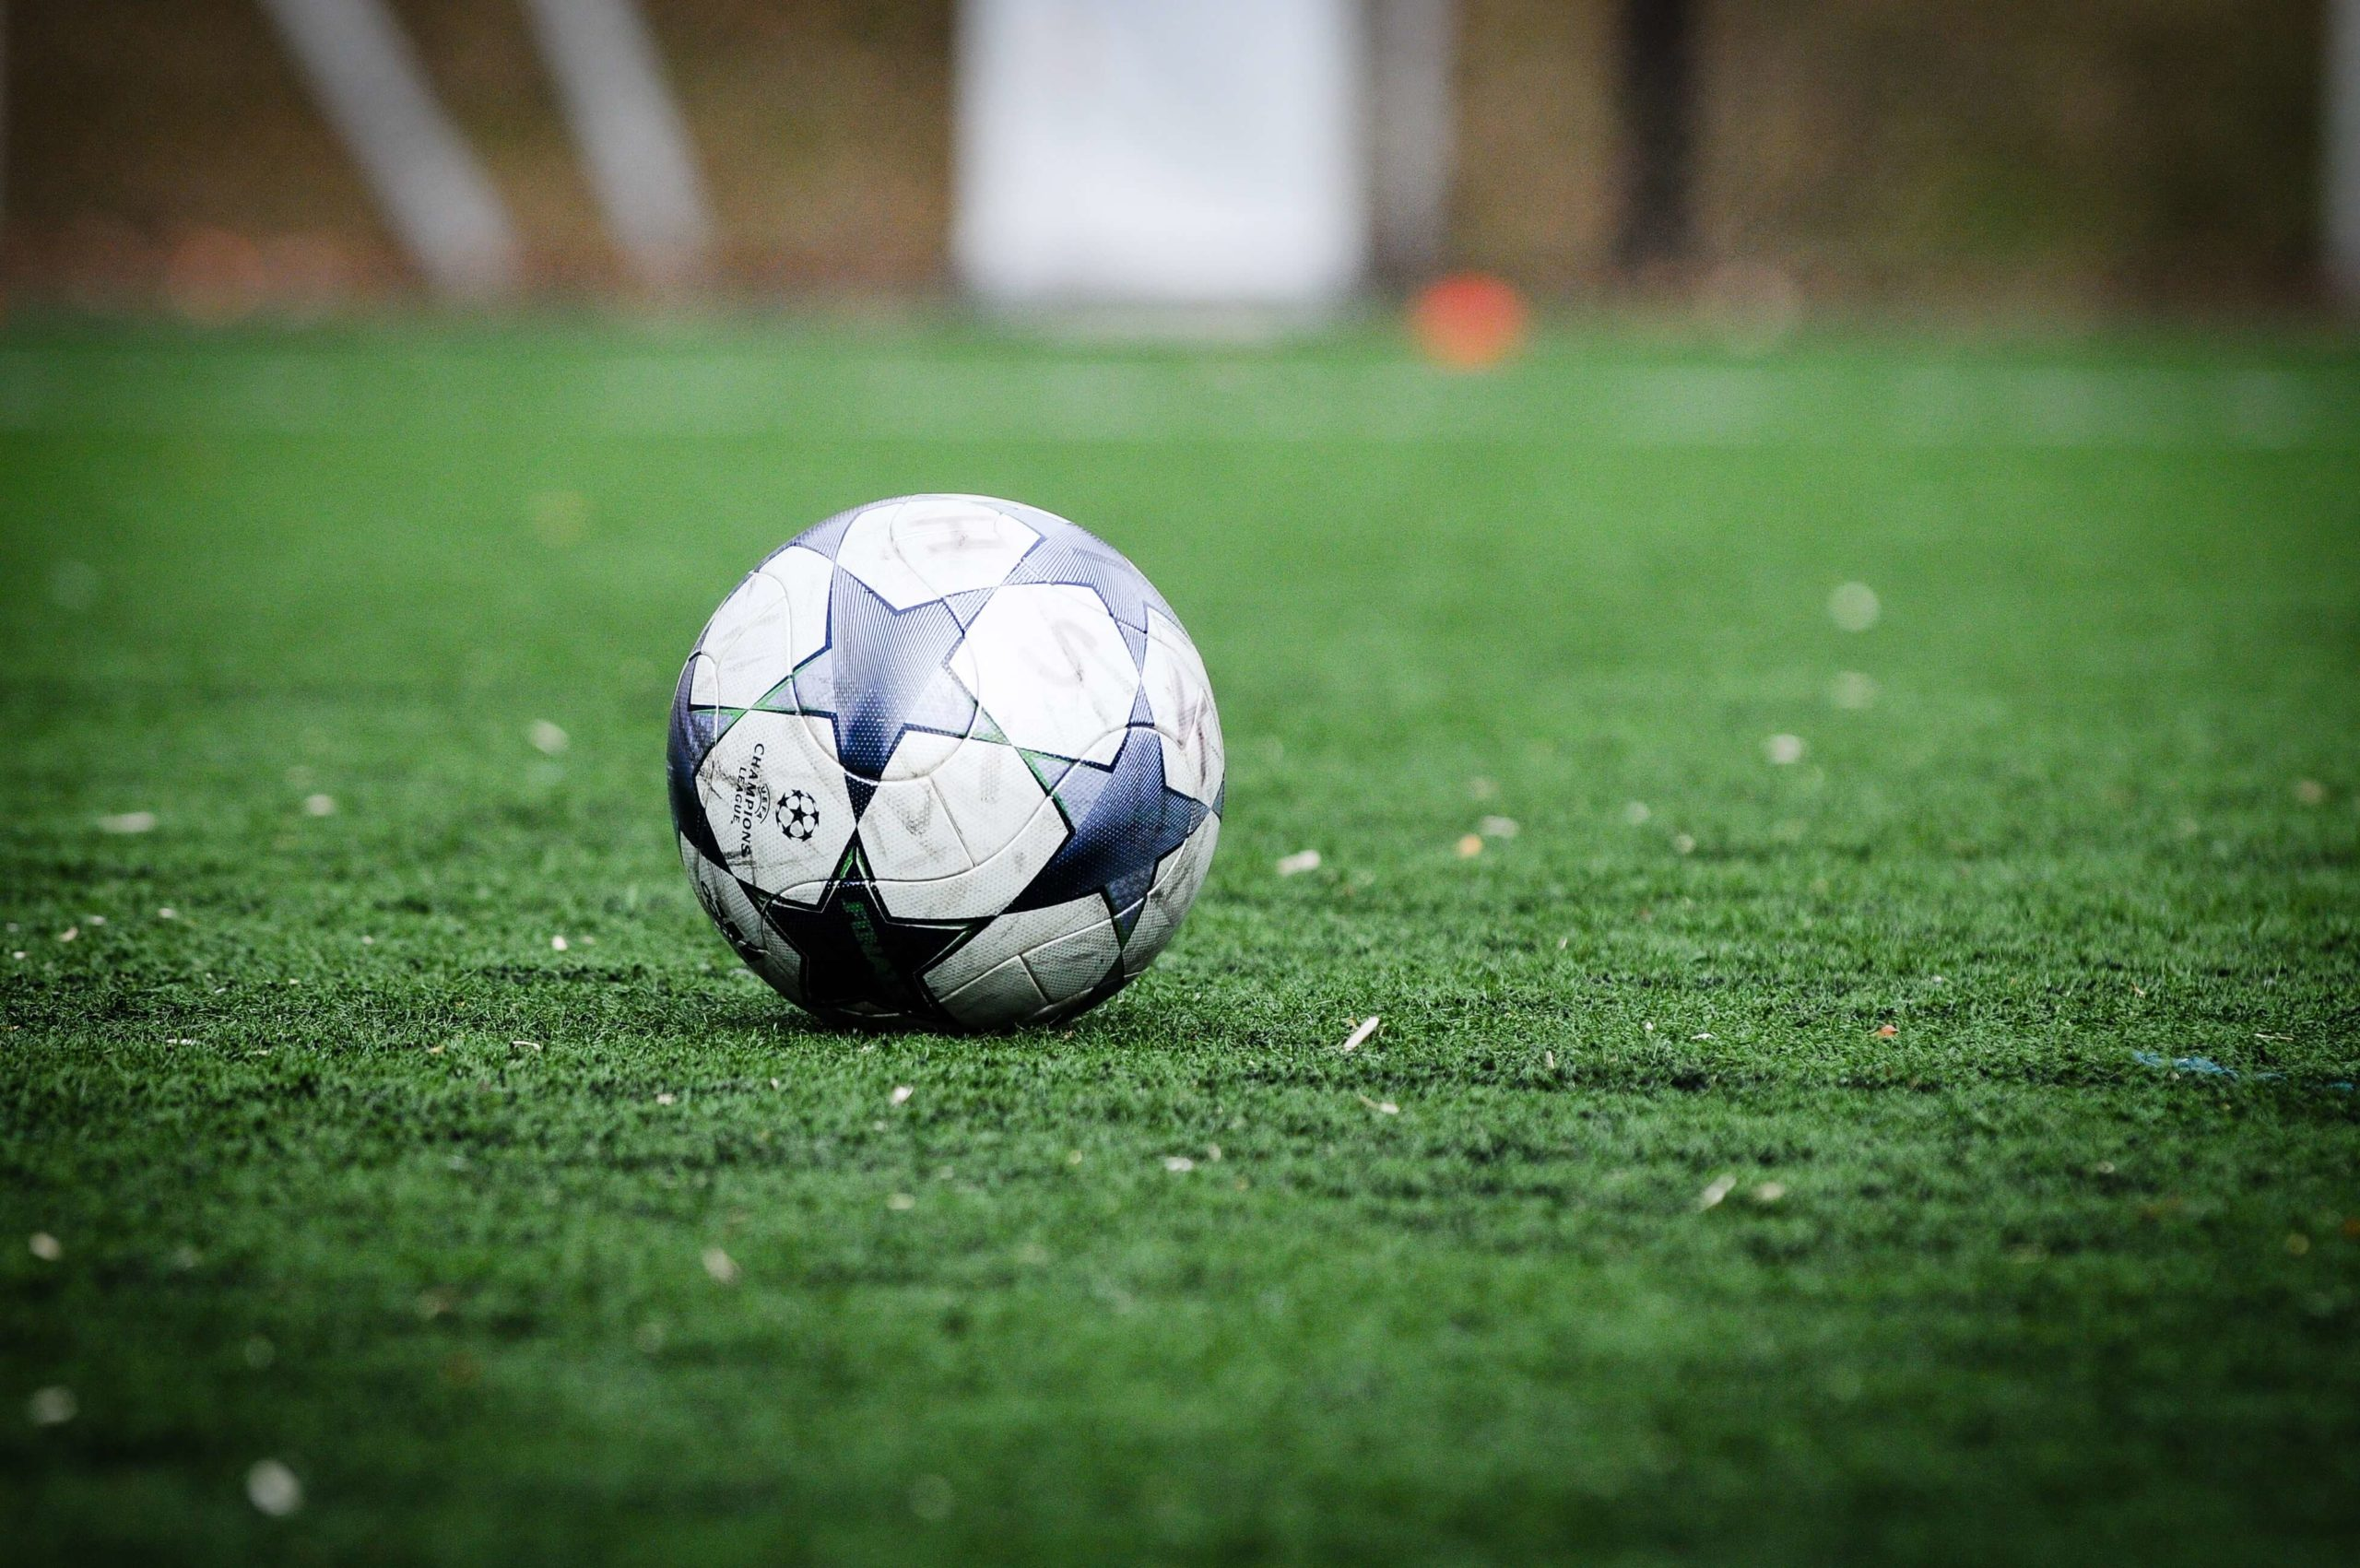 Football's coming home – How to pass the time before kick-off